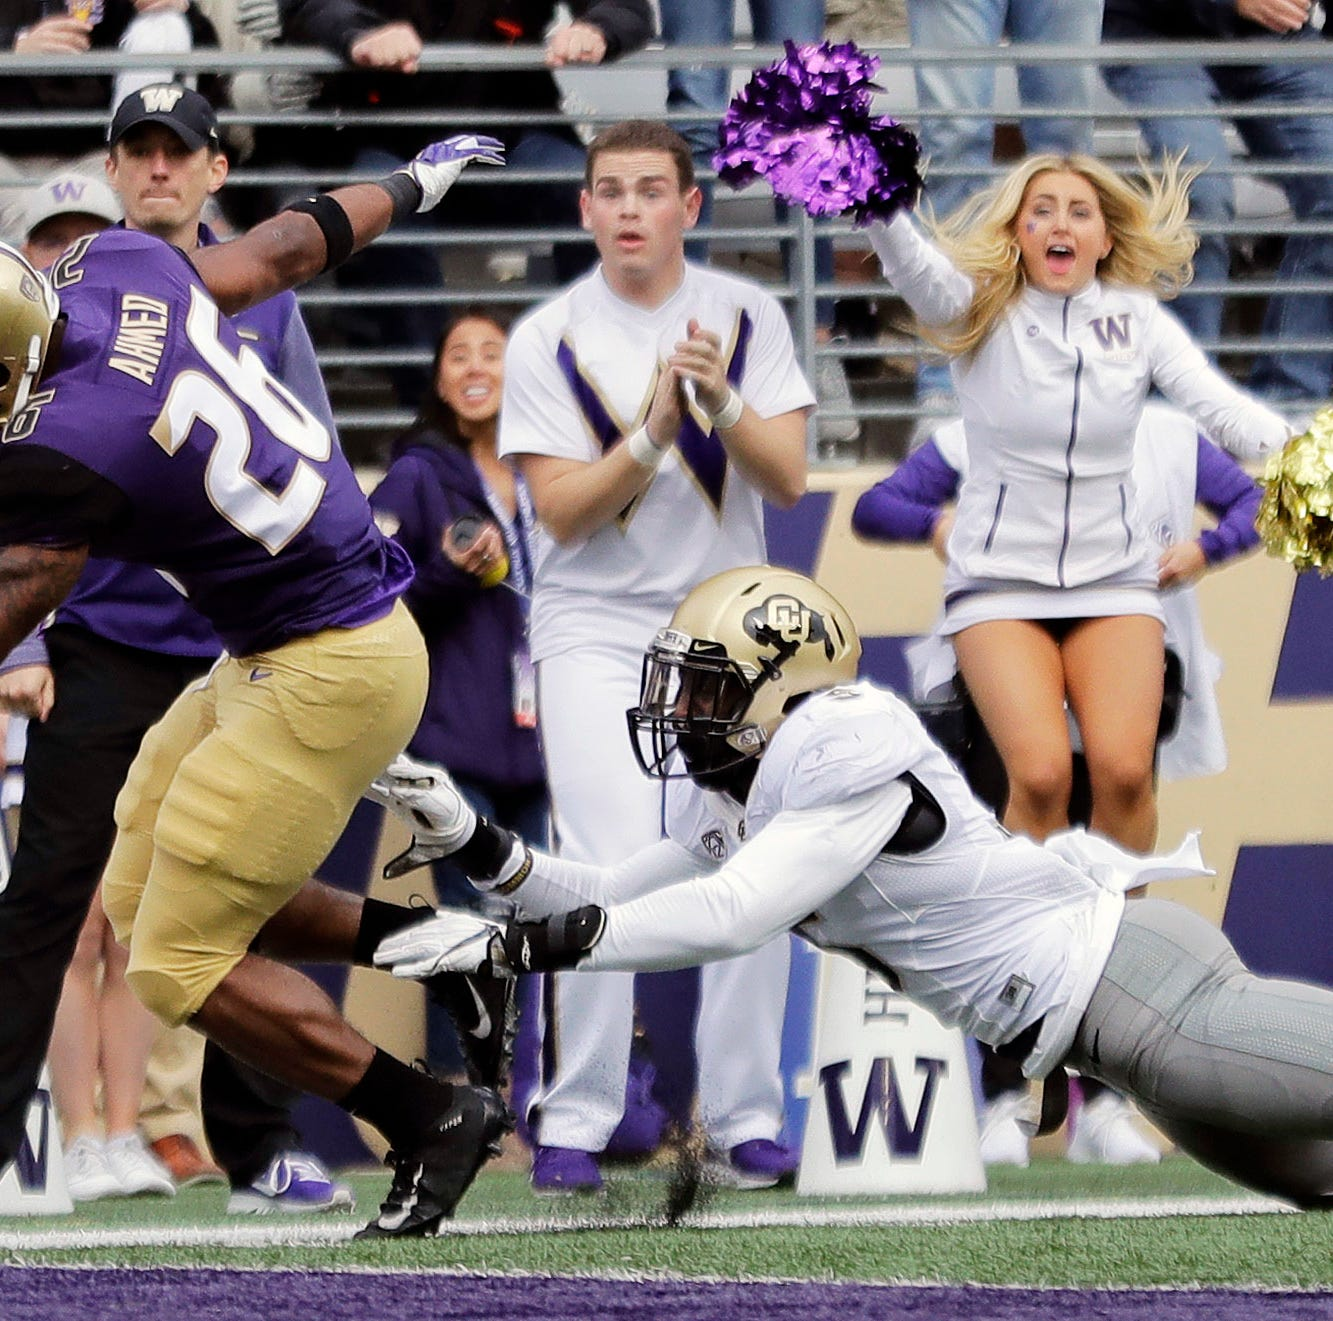 Washington showing its backfield depth with Gaskin sidelined